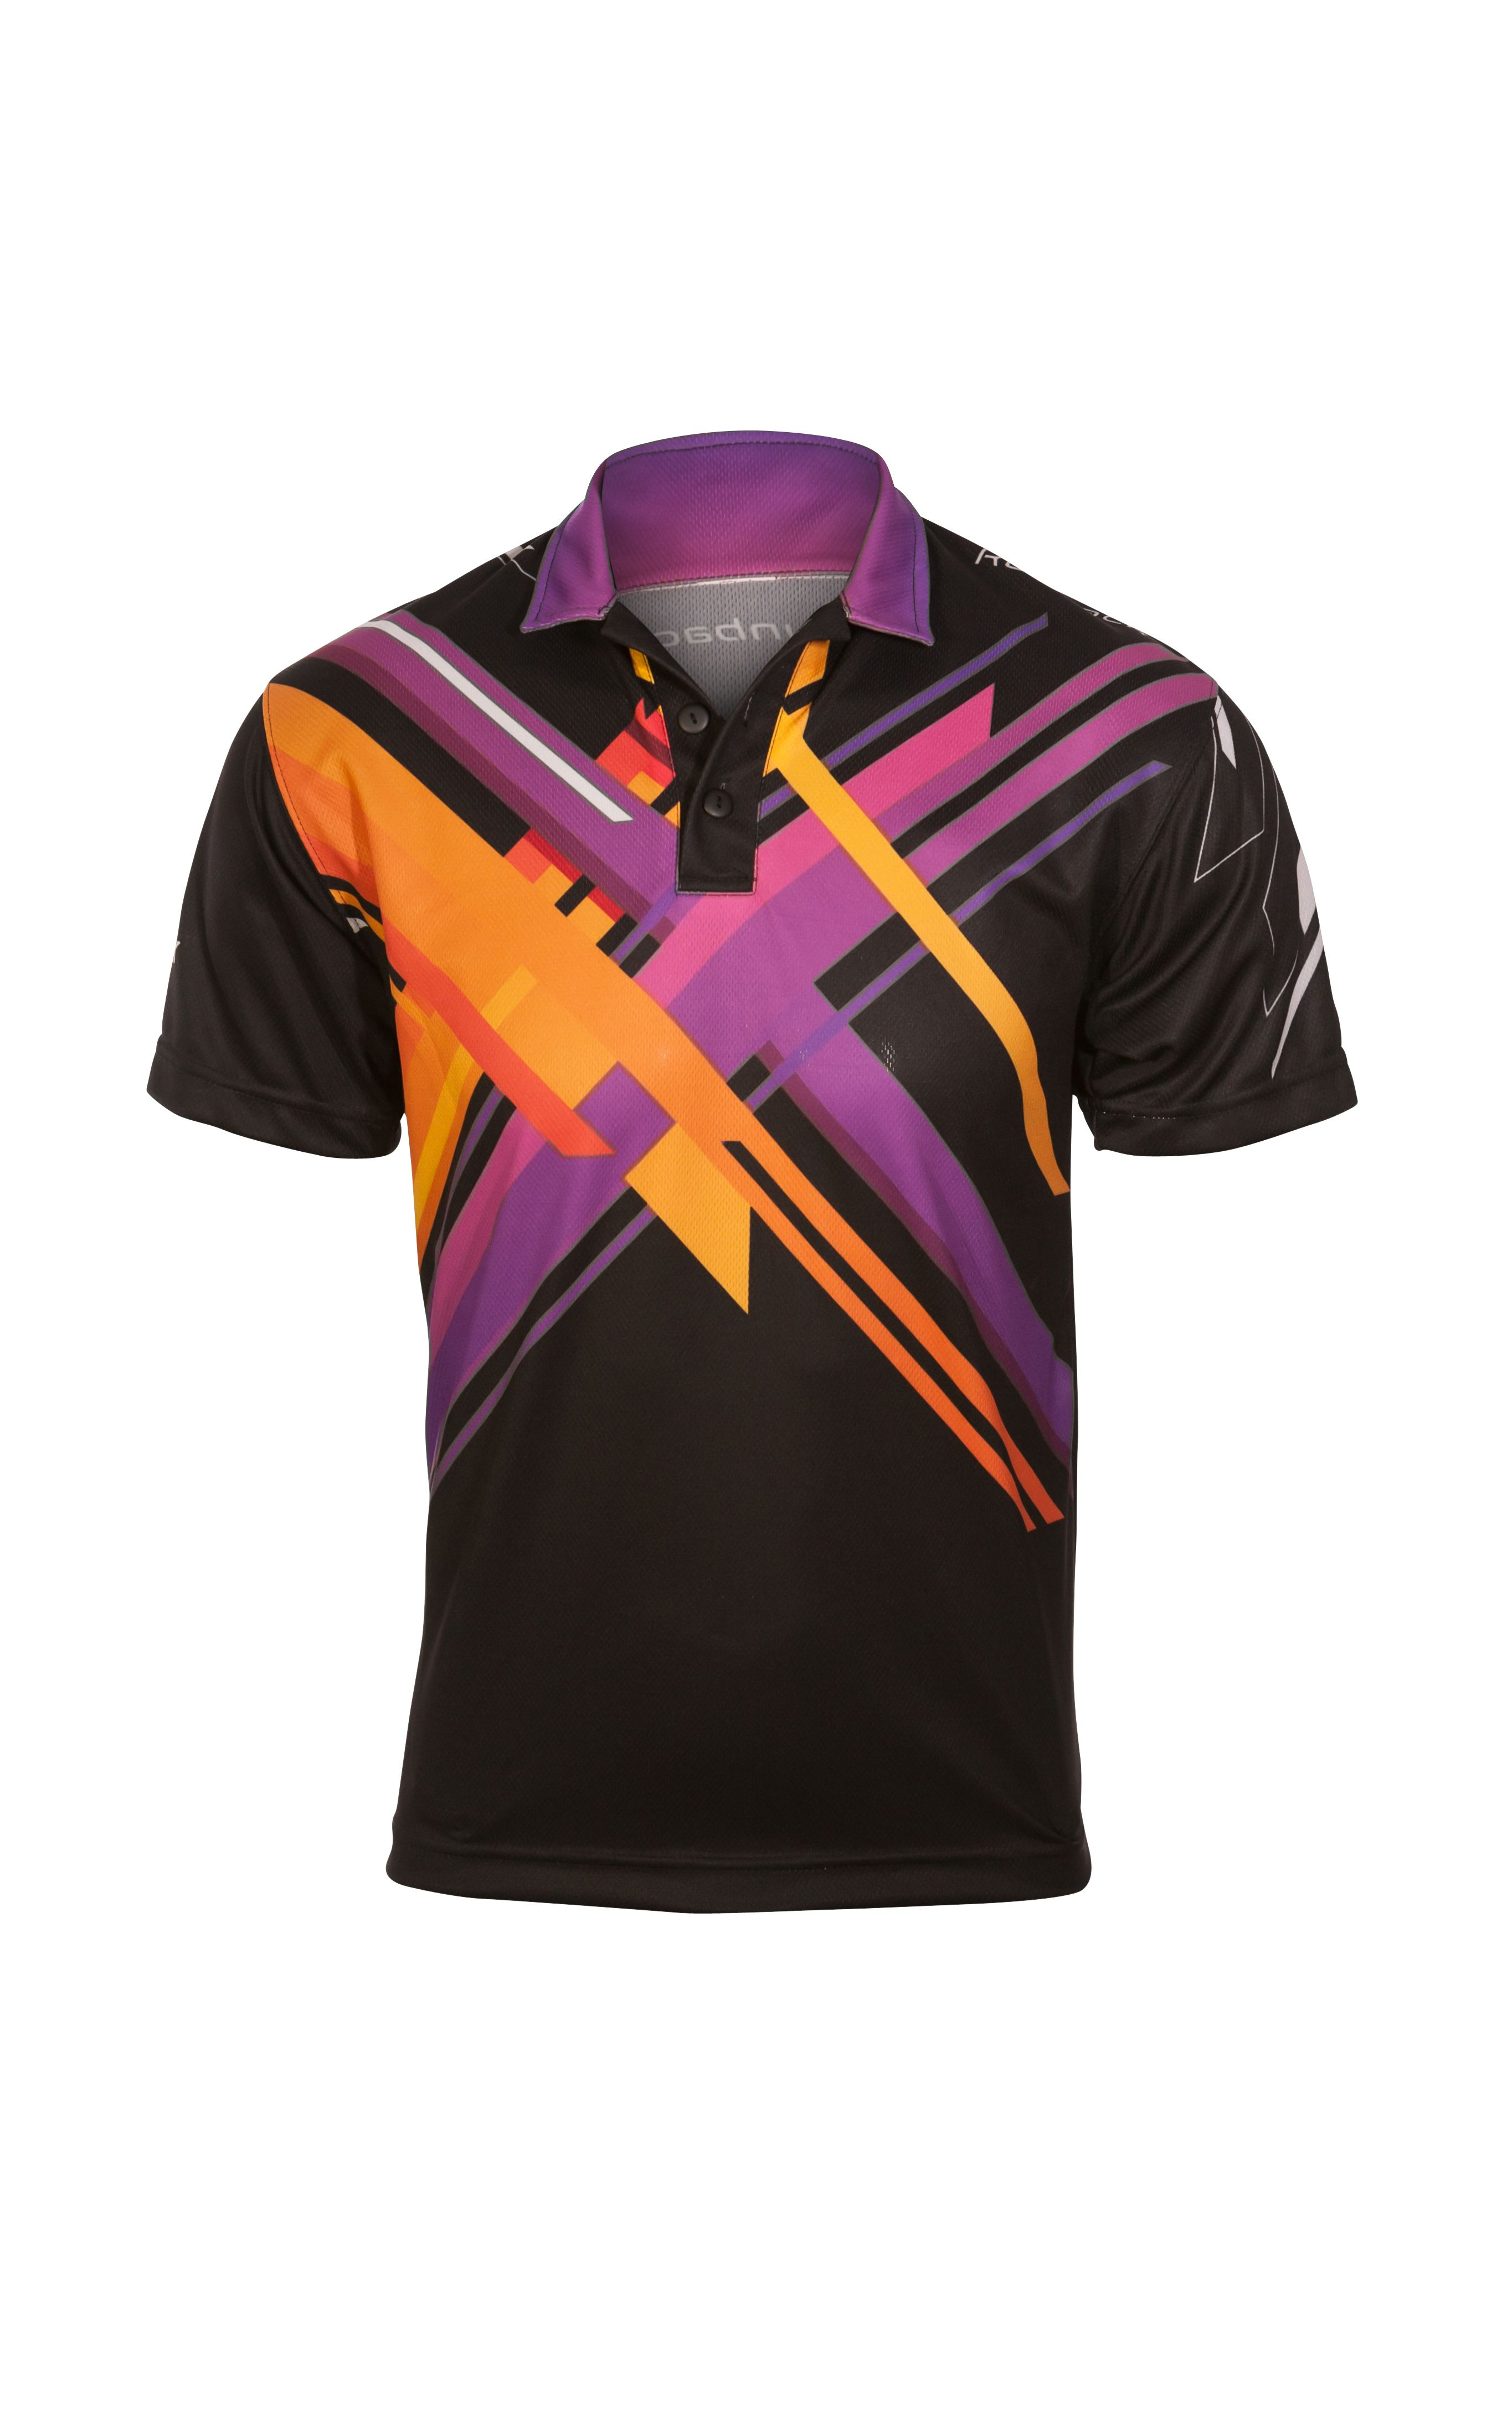 Mens Polo Shirt This Item Can Be Be Completely Customized With Your